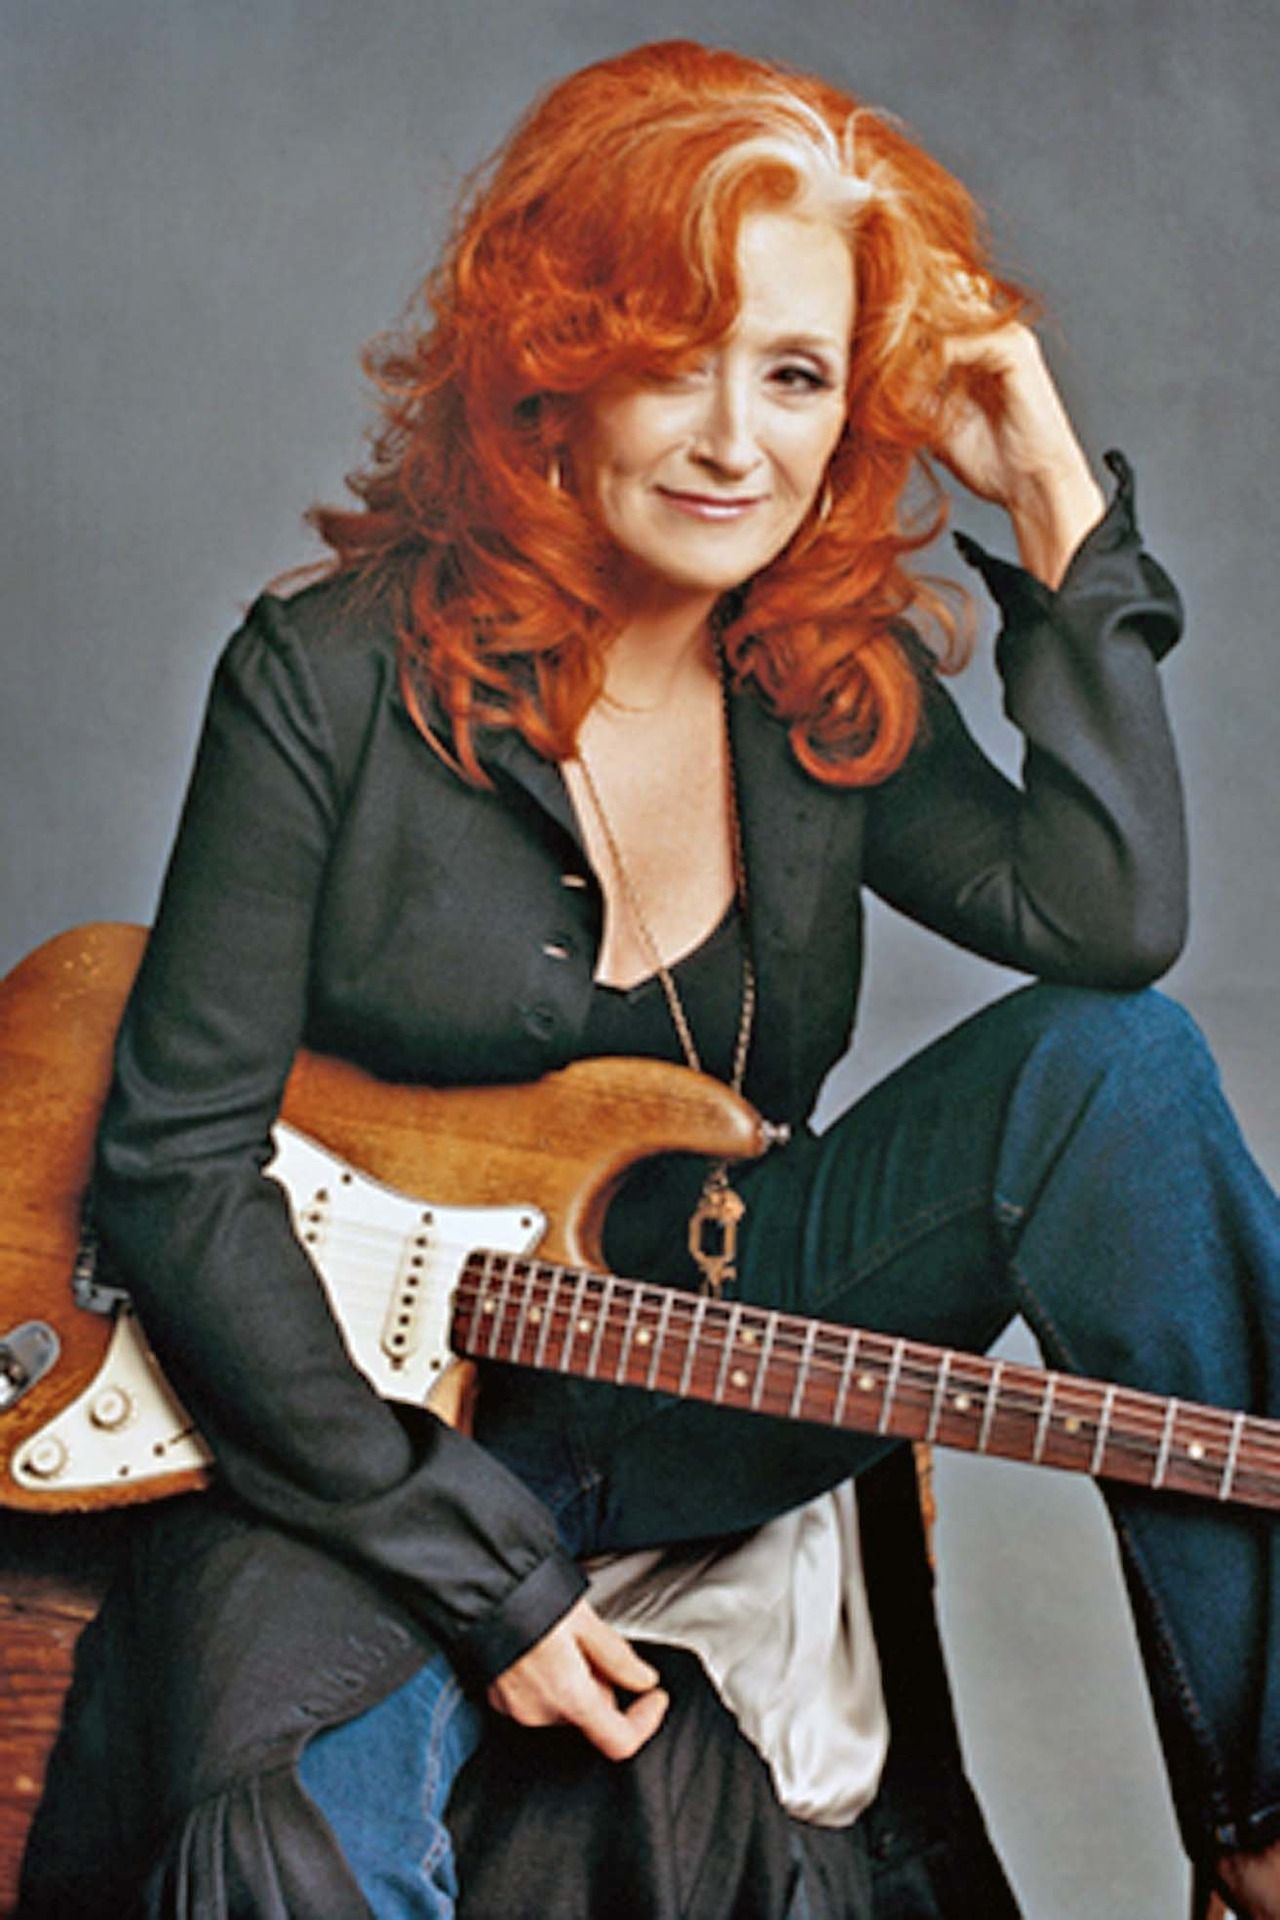 Bonnie Raitt Amazing Female Songwriter And Guitarist She S One At The Top If My Influences Love Her Blues Music Bonnie Raitt Female Guitarist